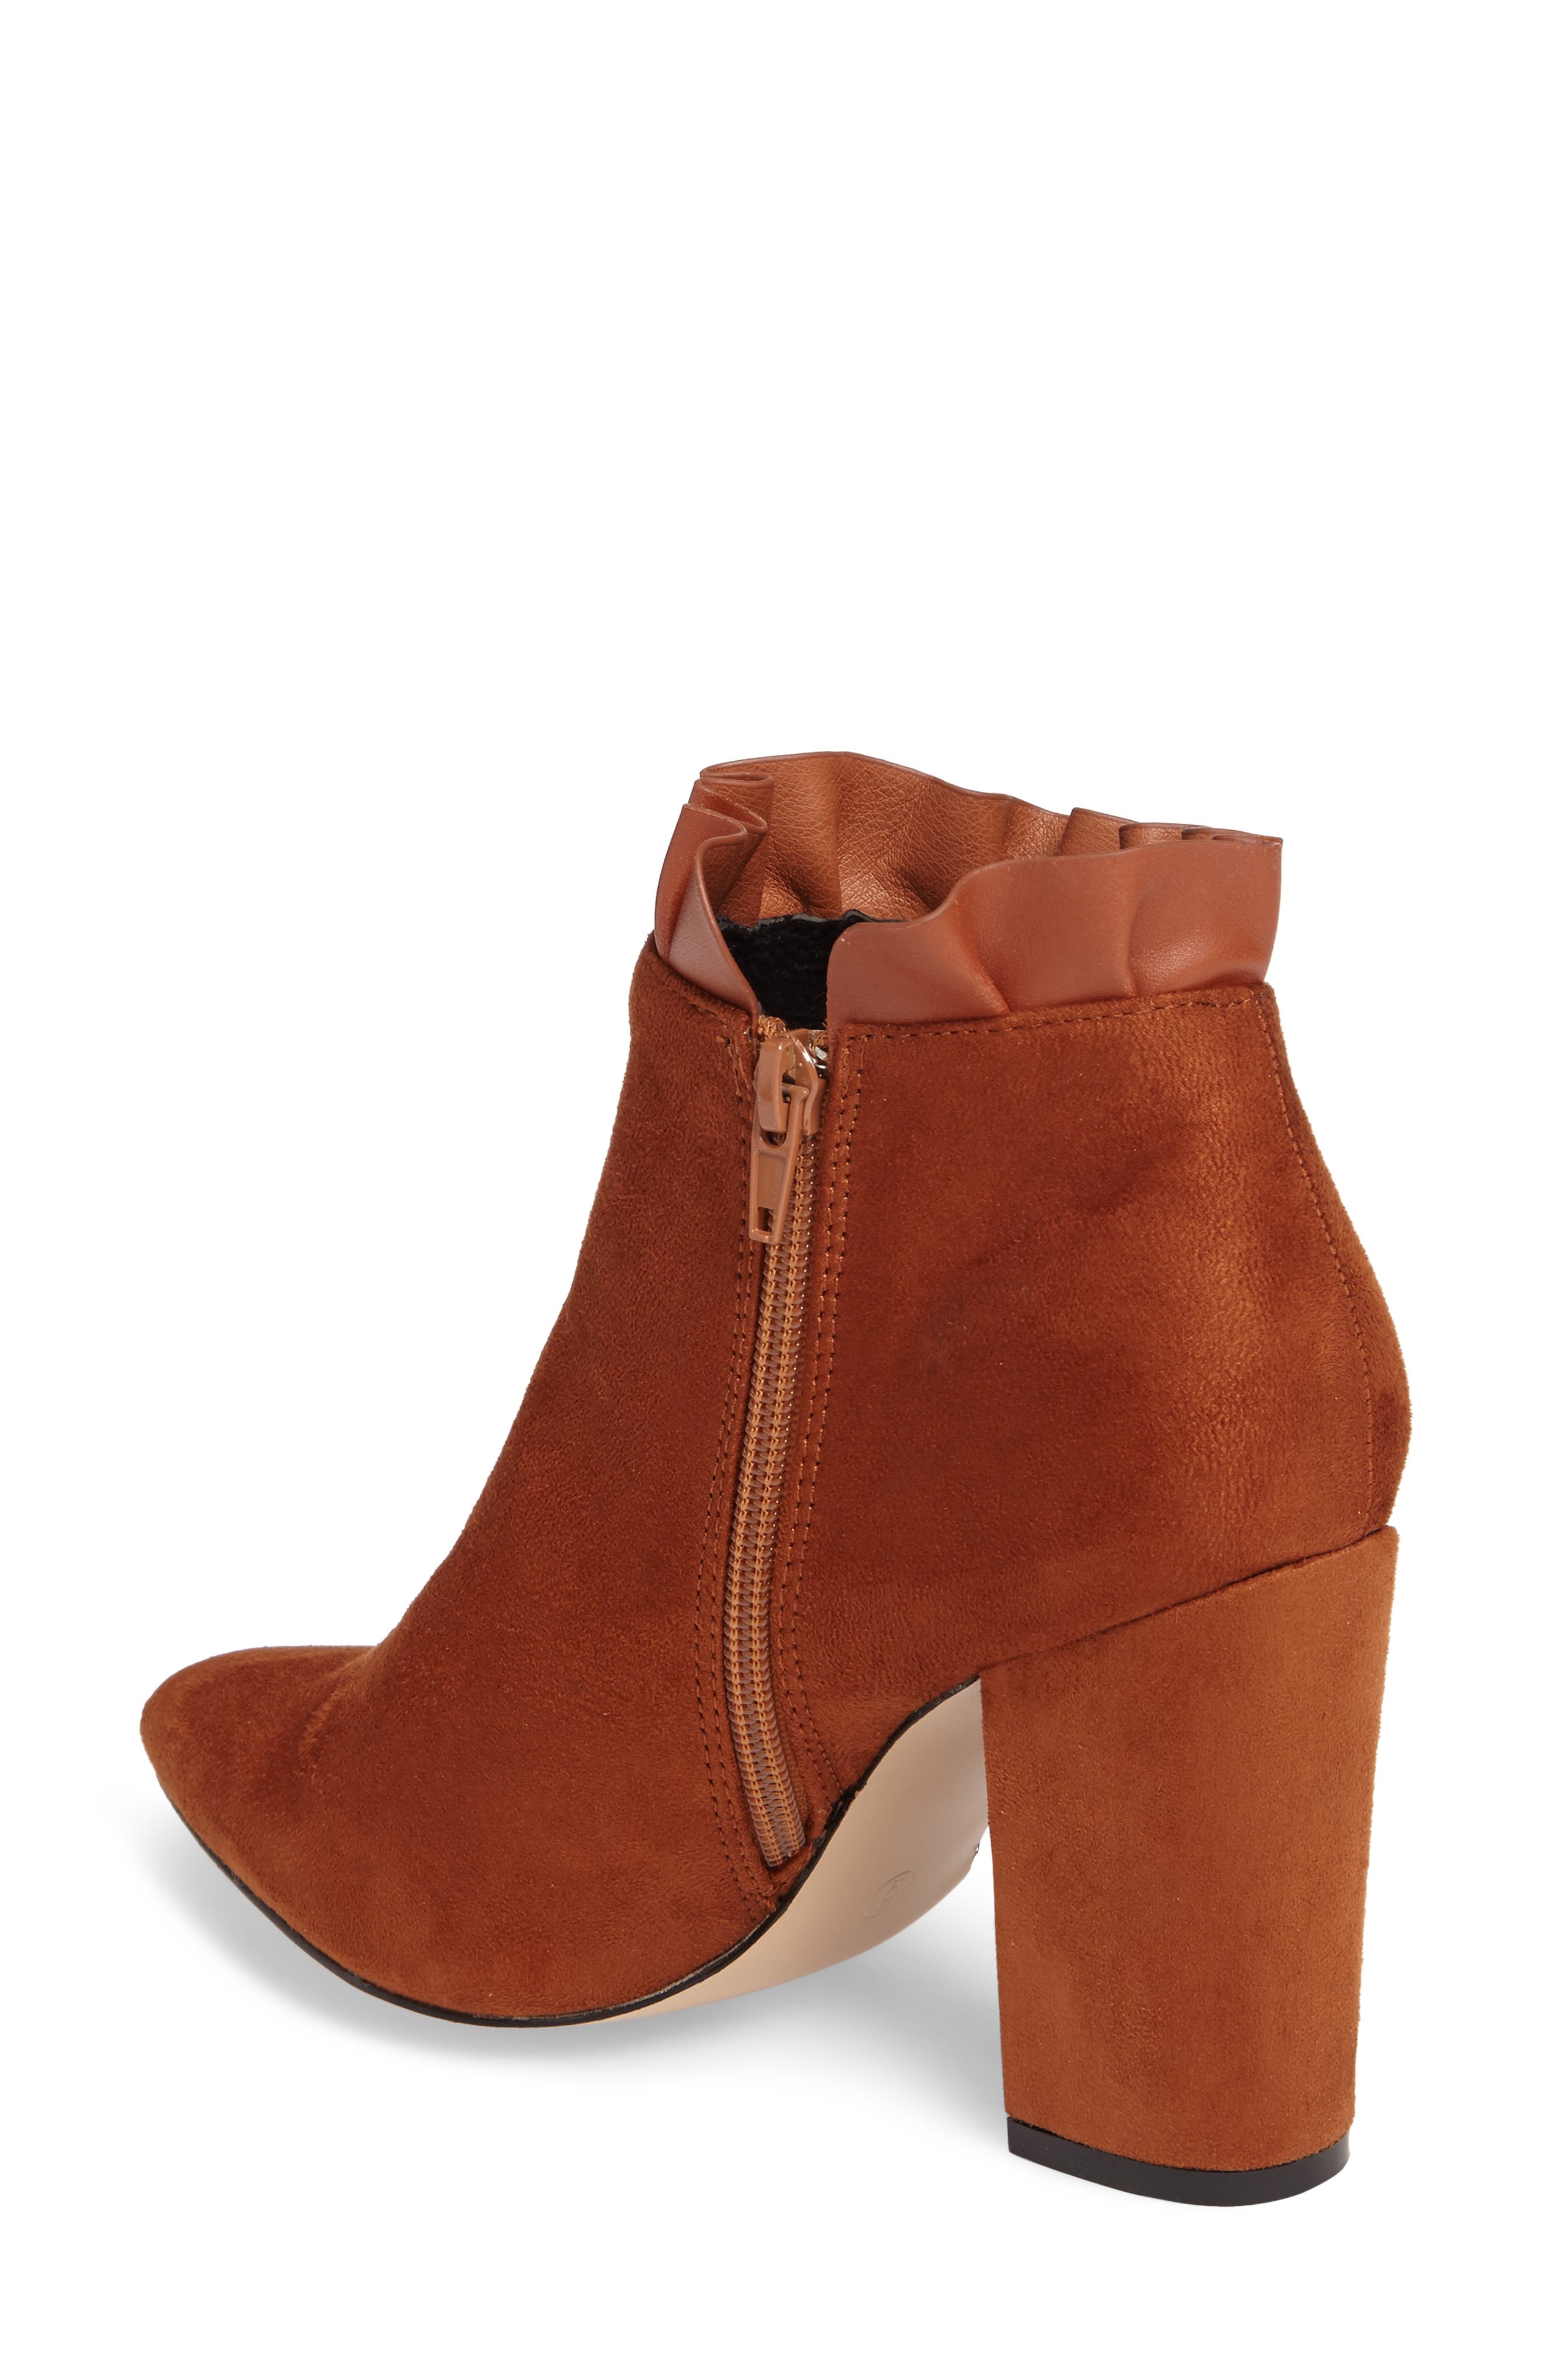 Katana Pointy Toe Bootie,                             Alternate thumbnail 5, color,